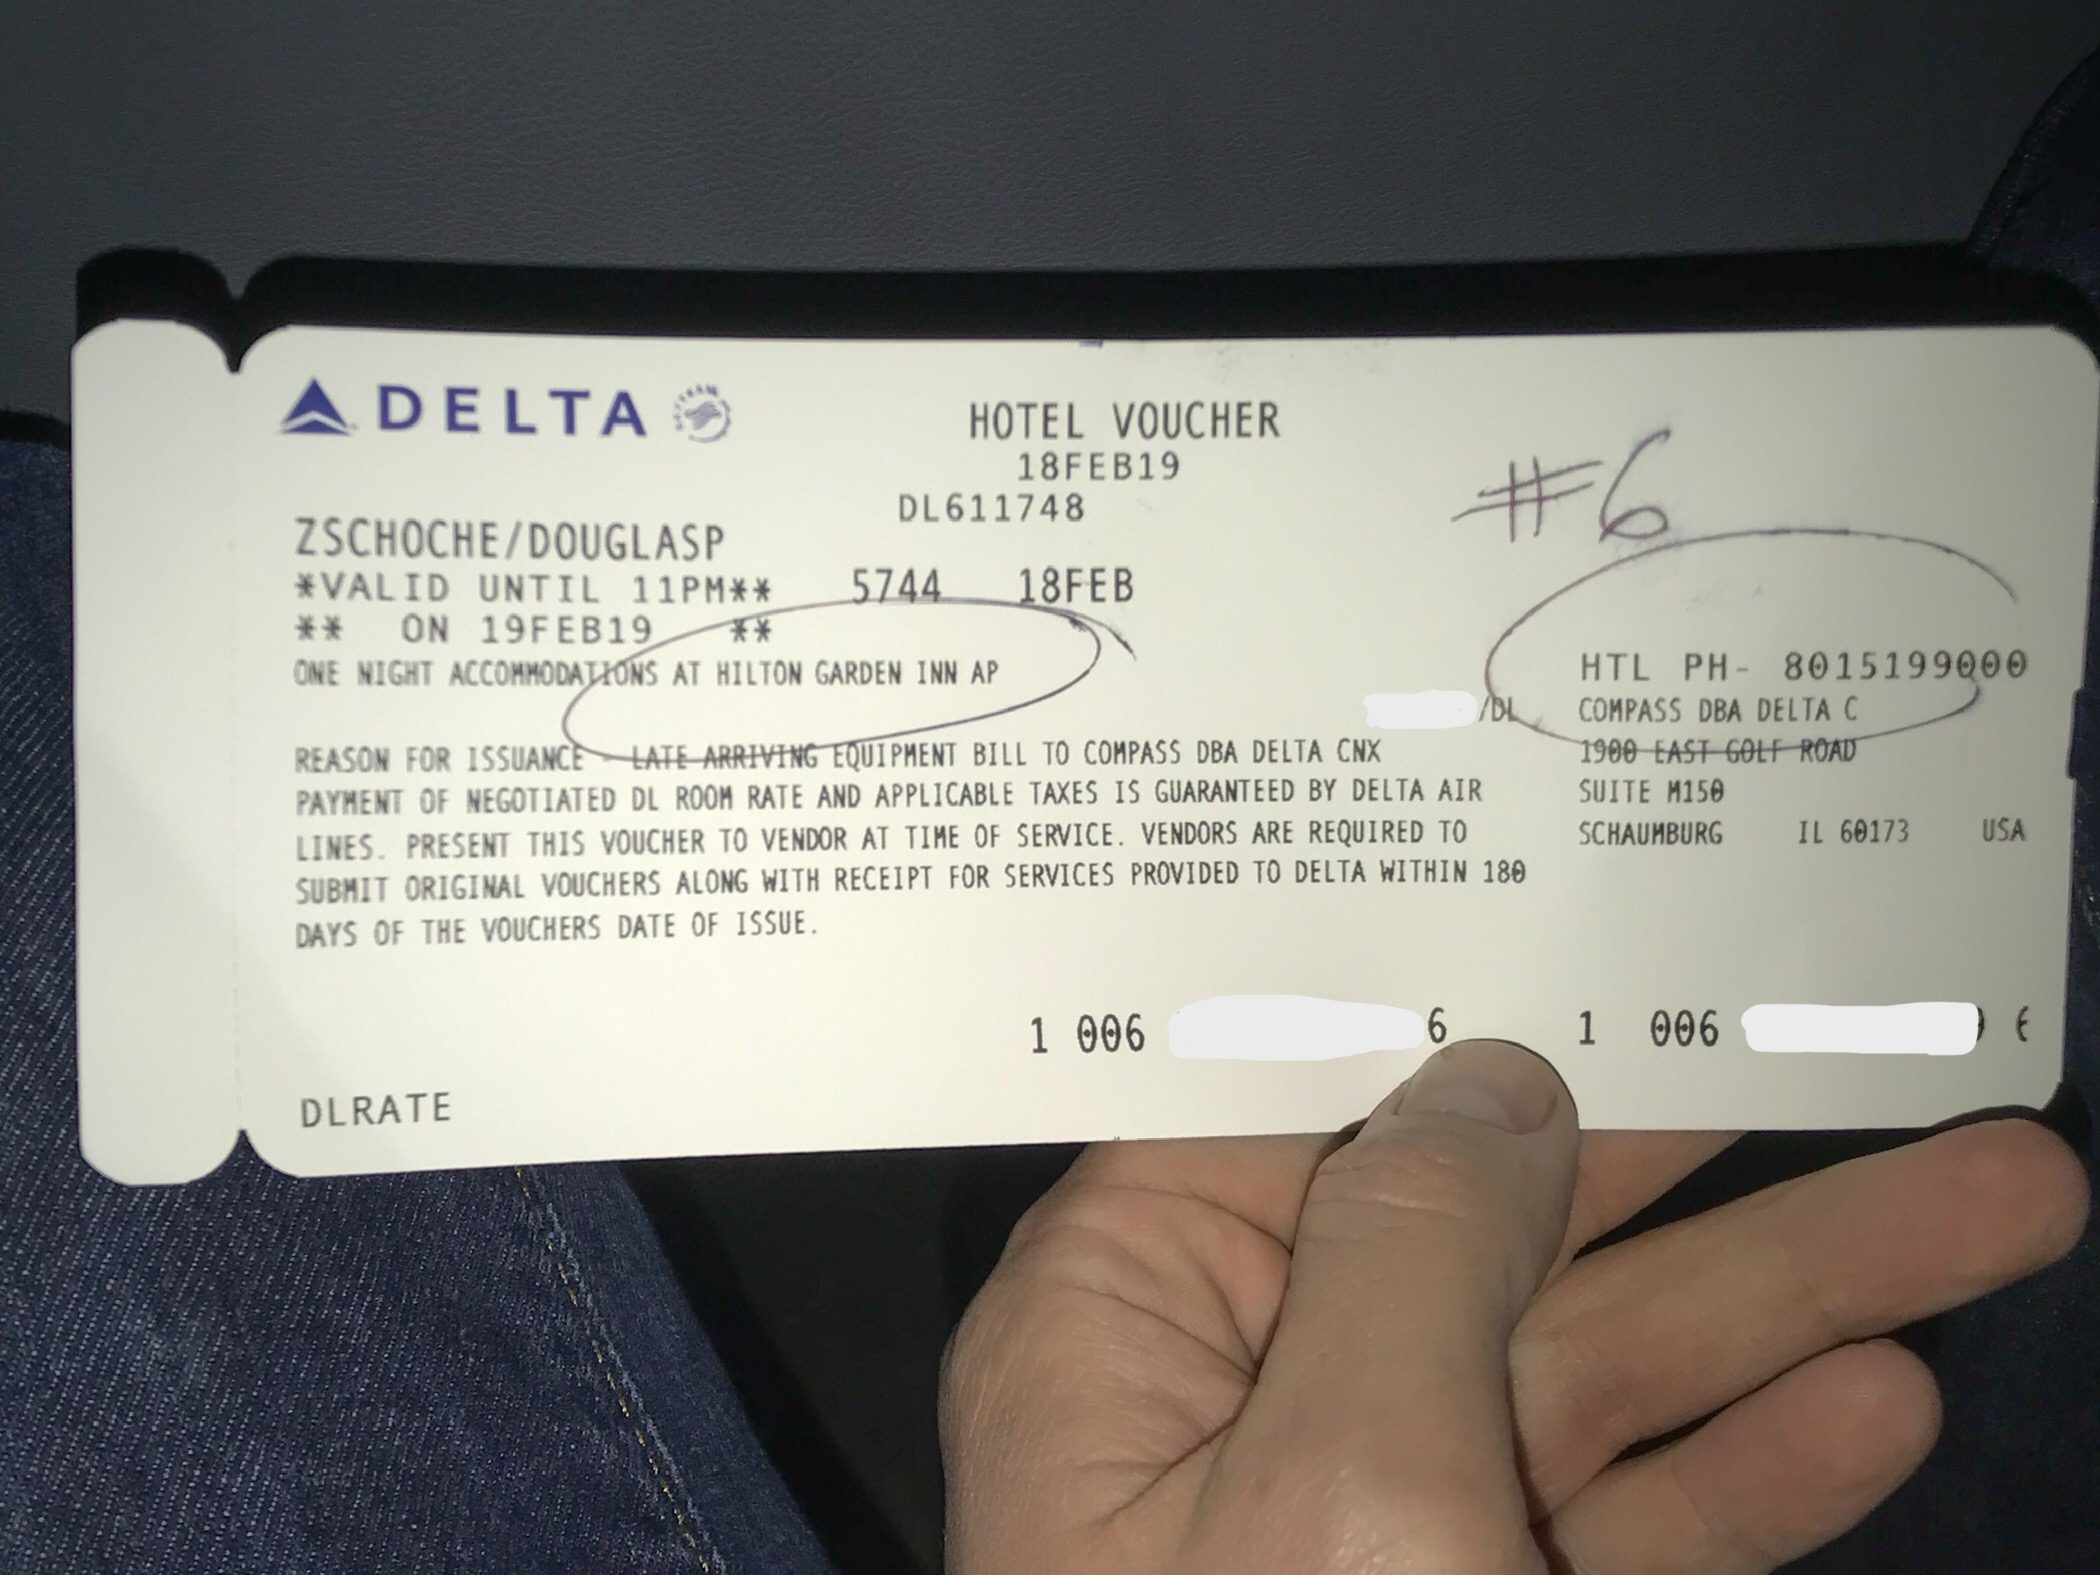 If you miss a connection (due to non-weather related delays) and are forced to stay the night at a location other than your final destination, Delta will cover the cost of a hotel. Proceed to a Delta help desk and they will provide you with a hotel voucher. The last time this happened to me, I was on the hotel shuttle within 15 minutes of stepping off my flight.